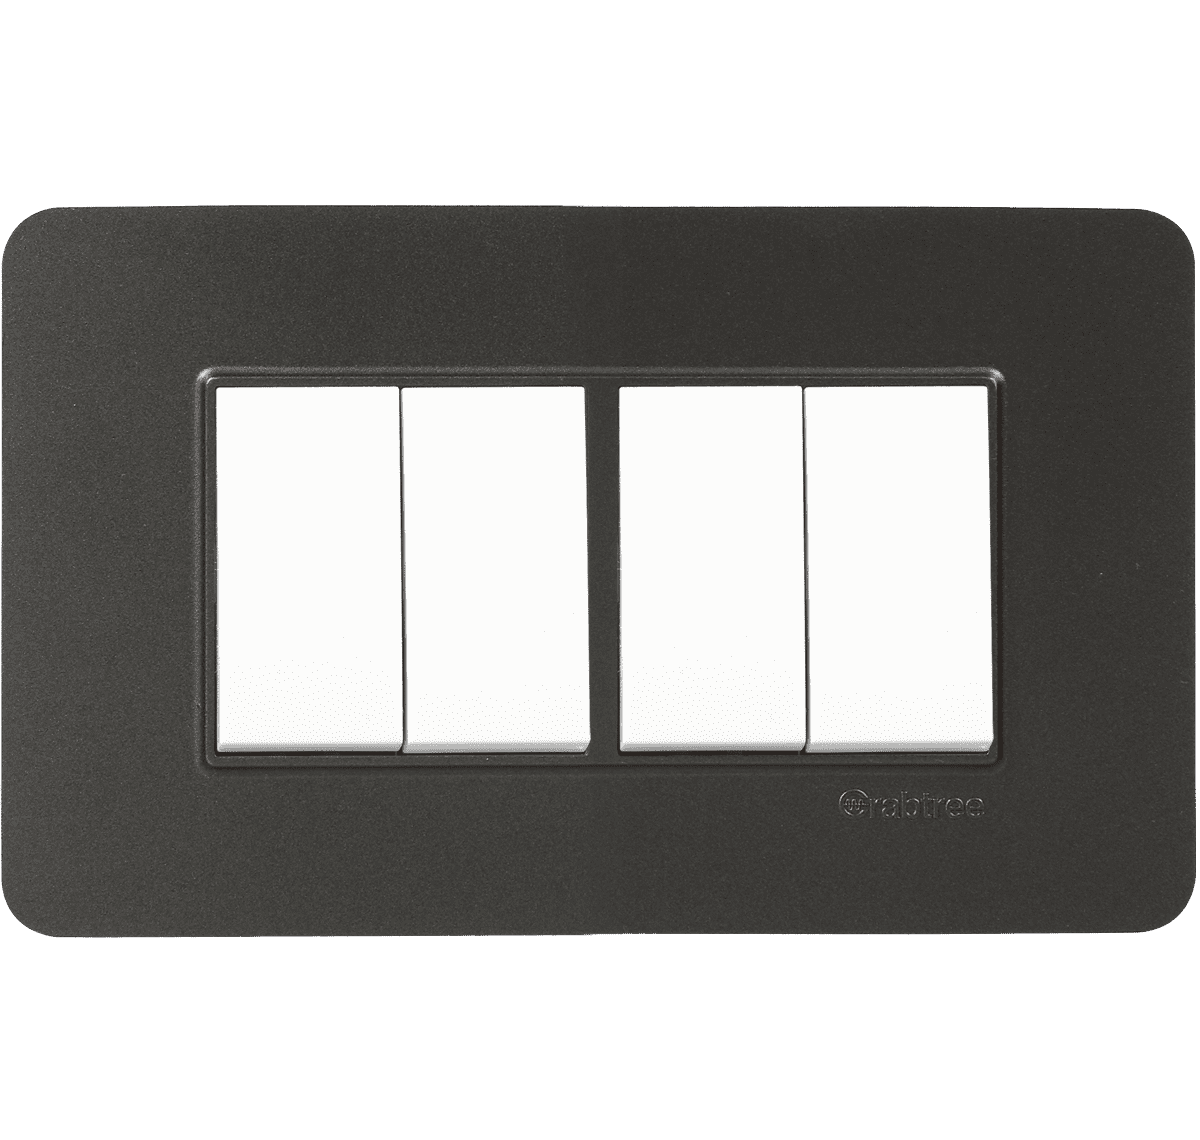 Crabtree - 4 M Front Plate with Pillar